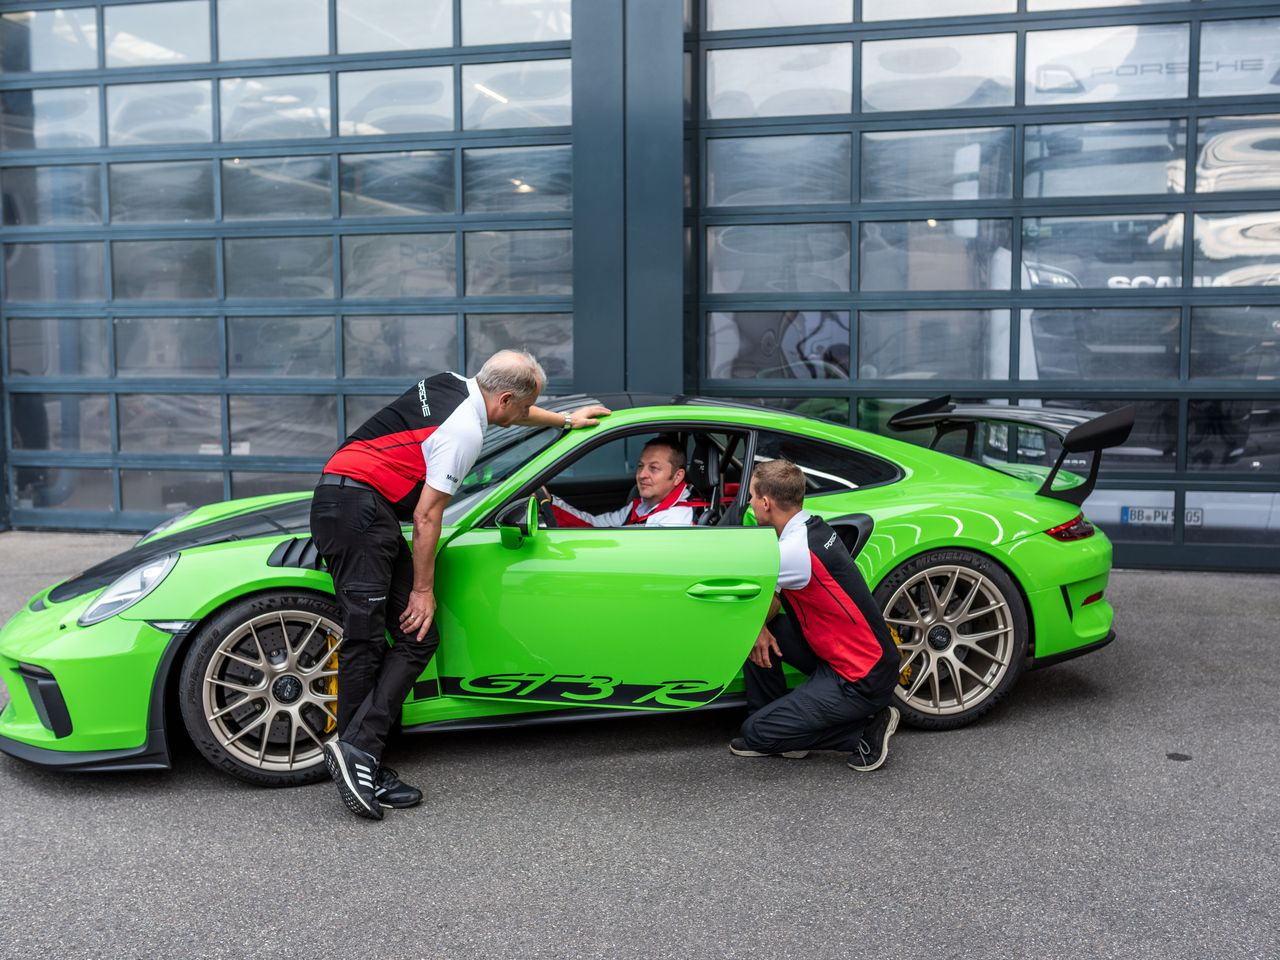 Teammates who can always count on each another : Jan Frank, Holger Bartels, and Marian Fiebig (from left) all contributed to the smooth performance and record drive of the 911 GT3 RS.